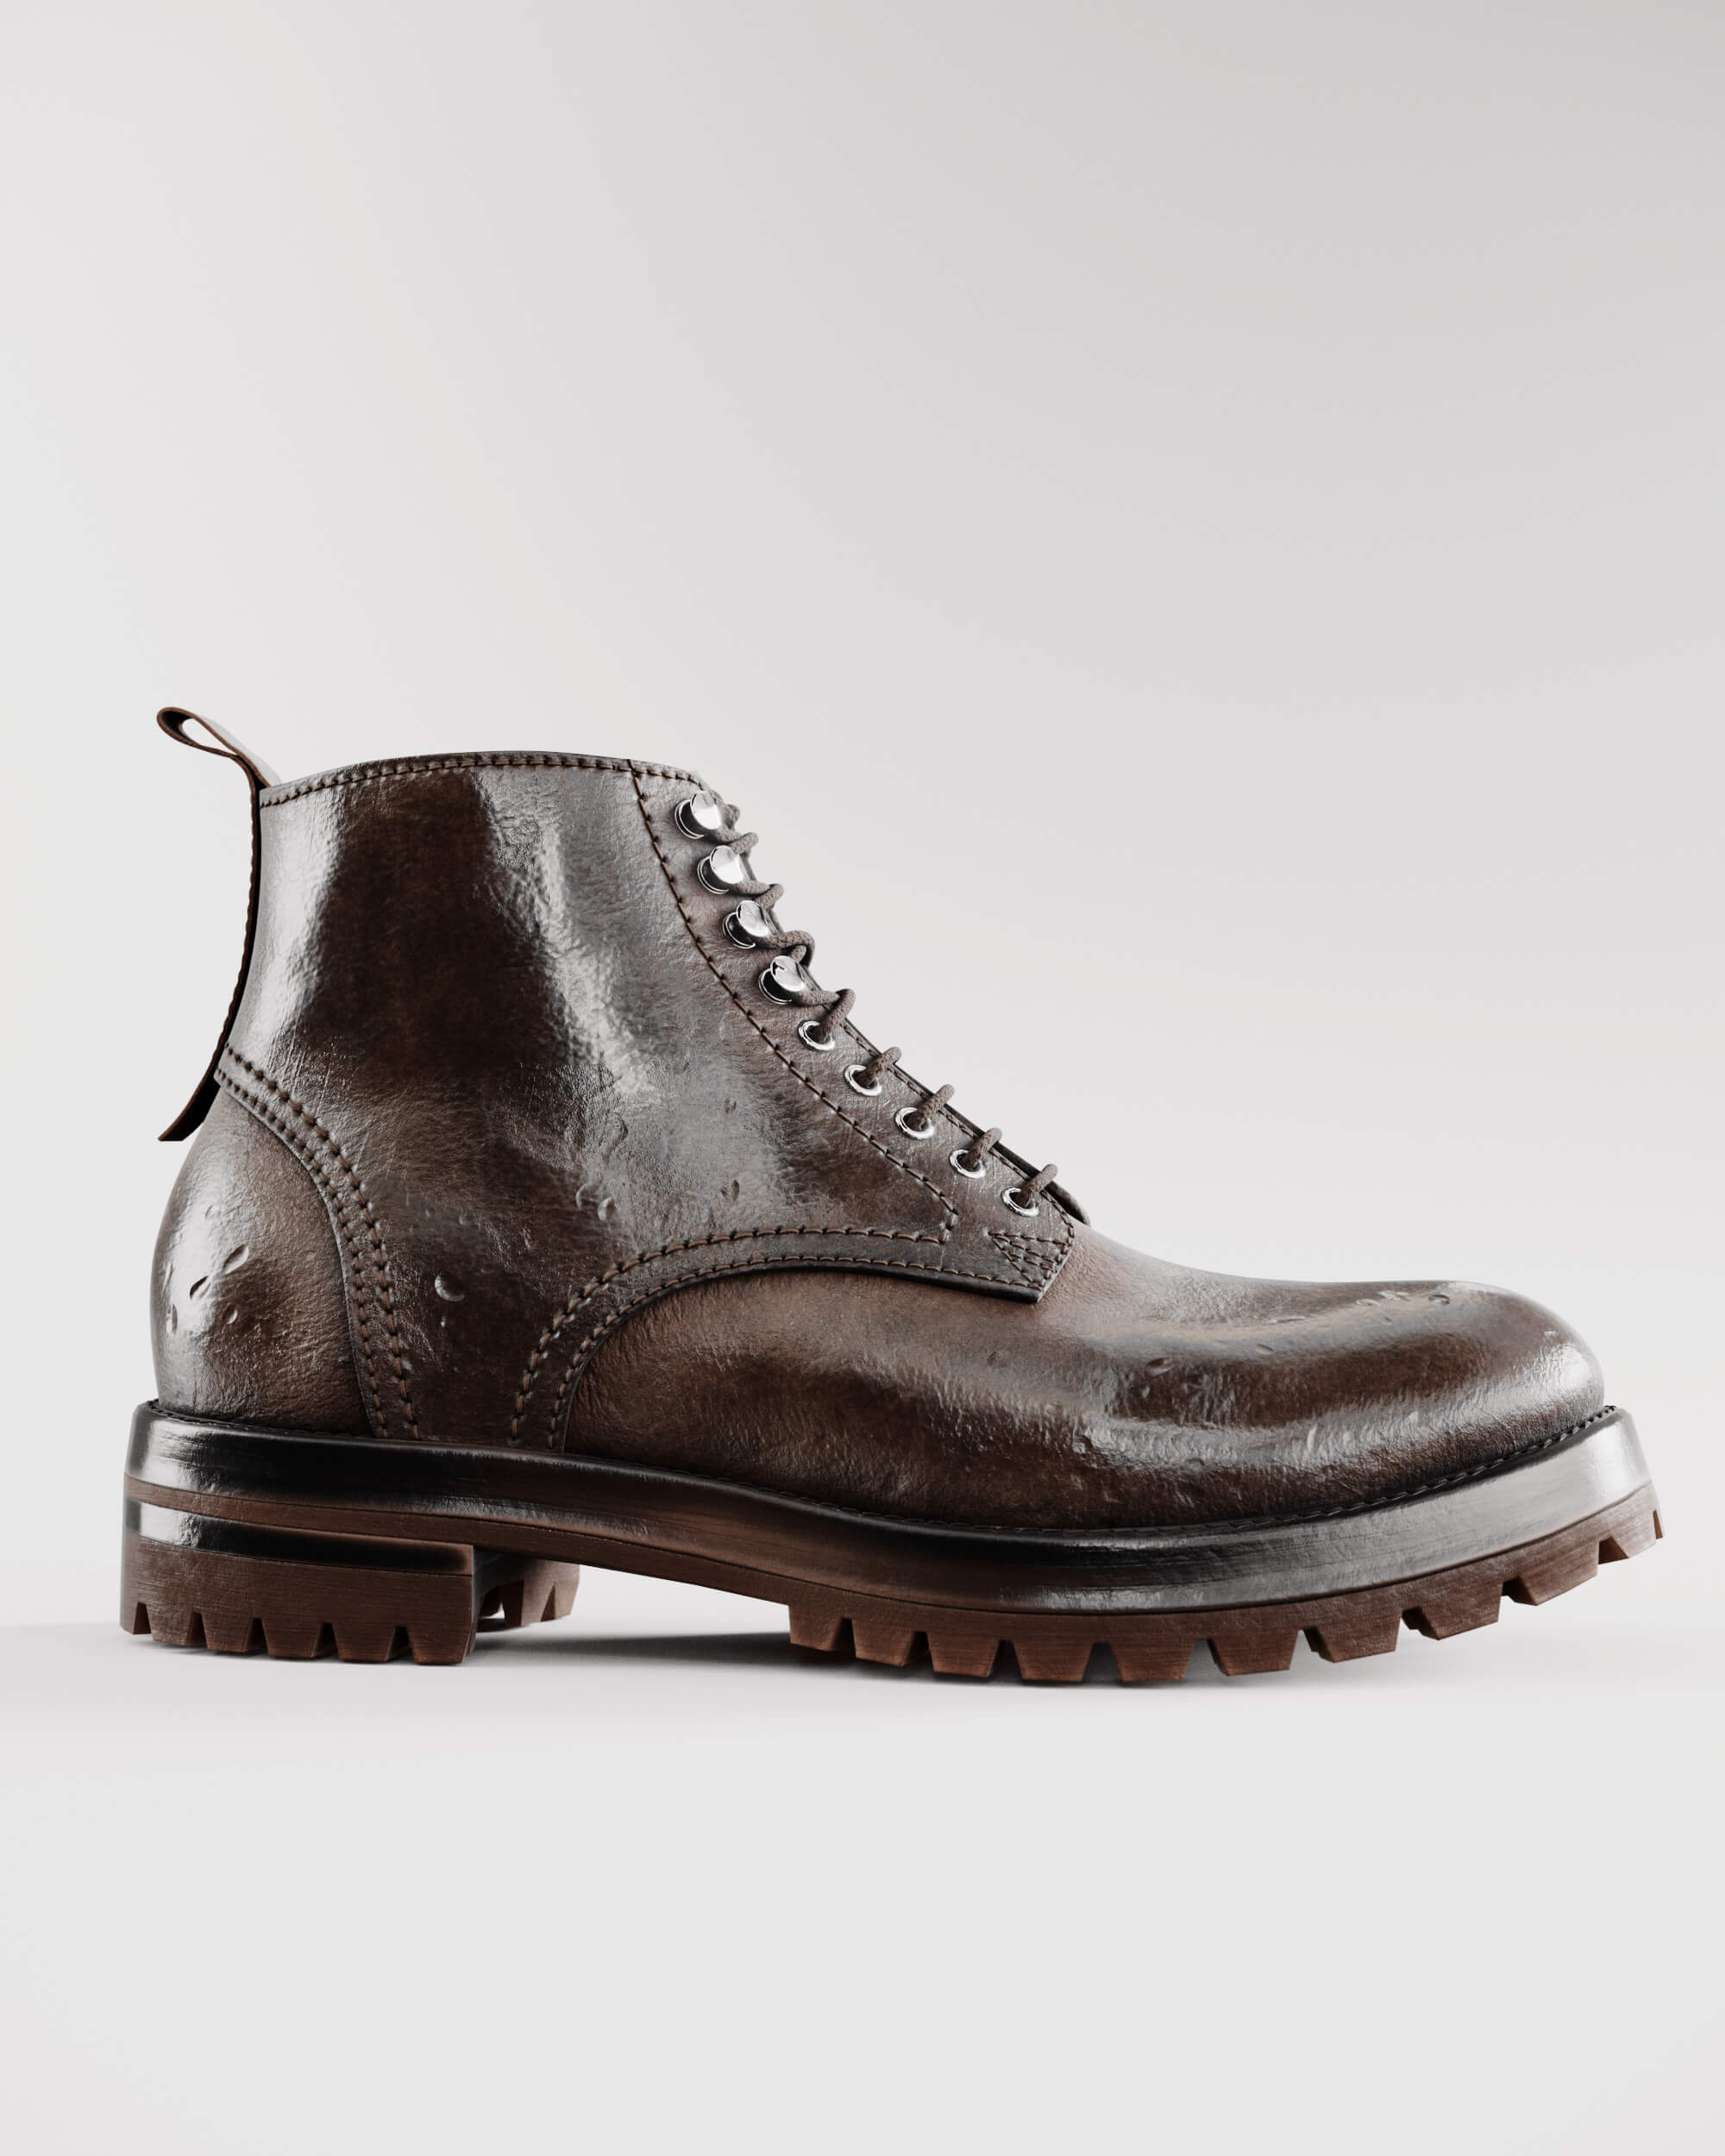 HQ image render of leather boot